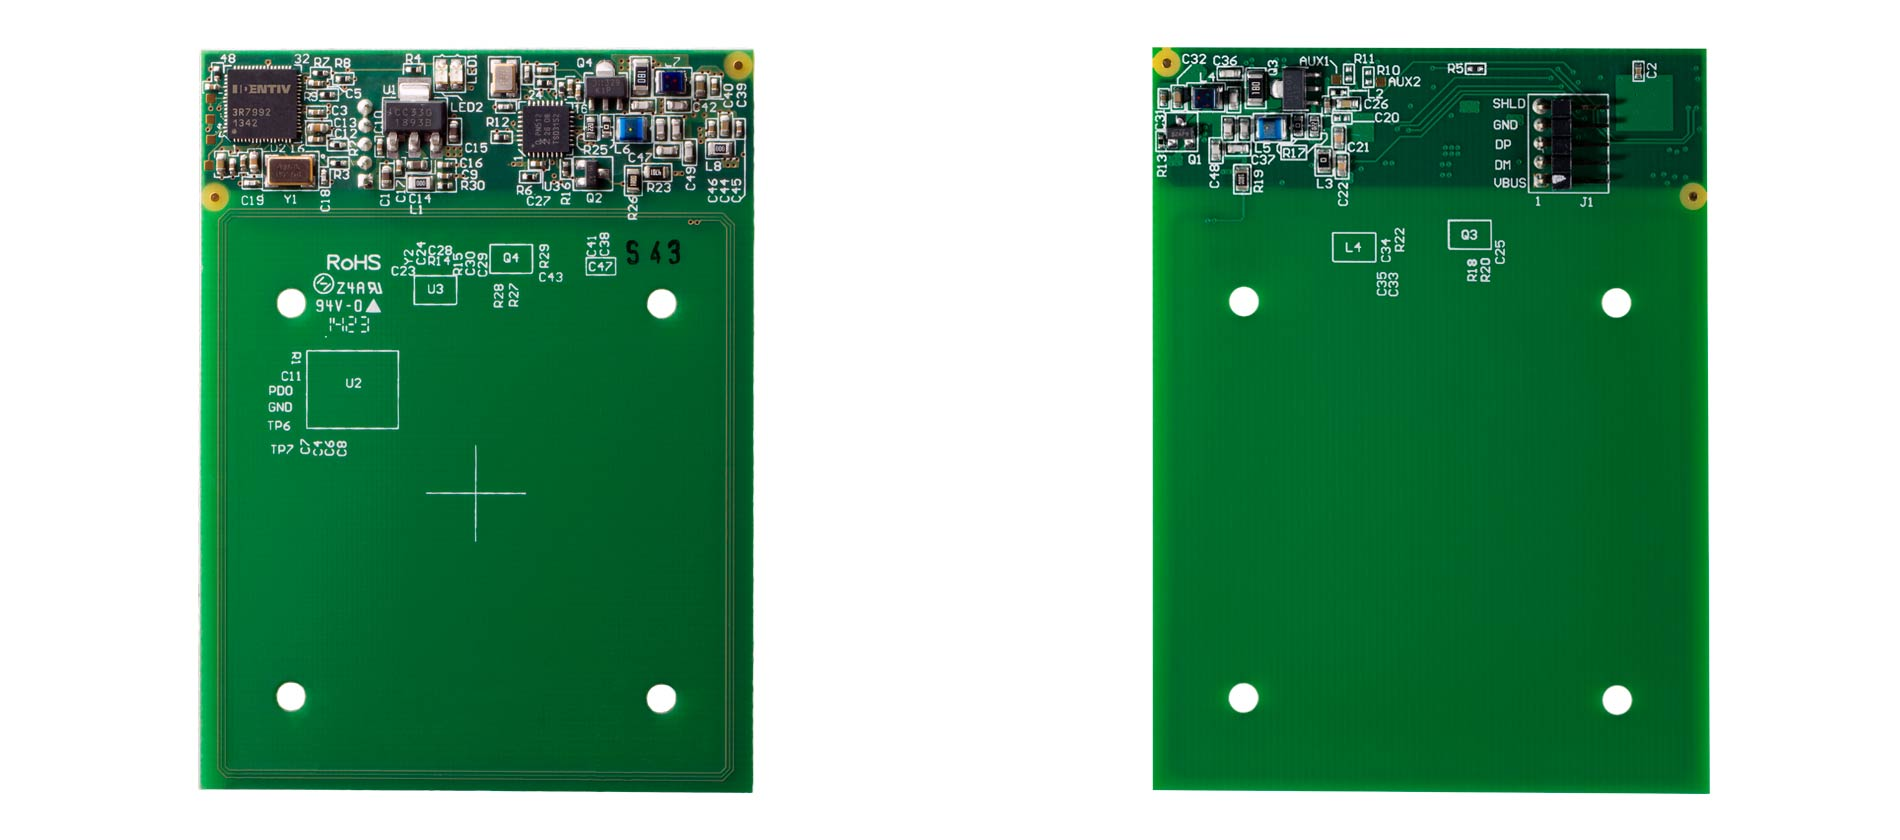 Identiv uTrust 3501 F Smart Card Reader Board